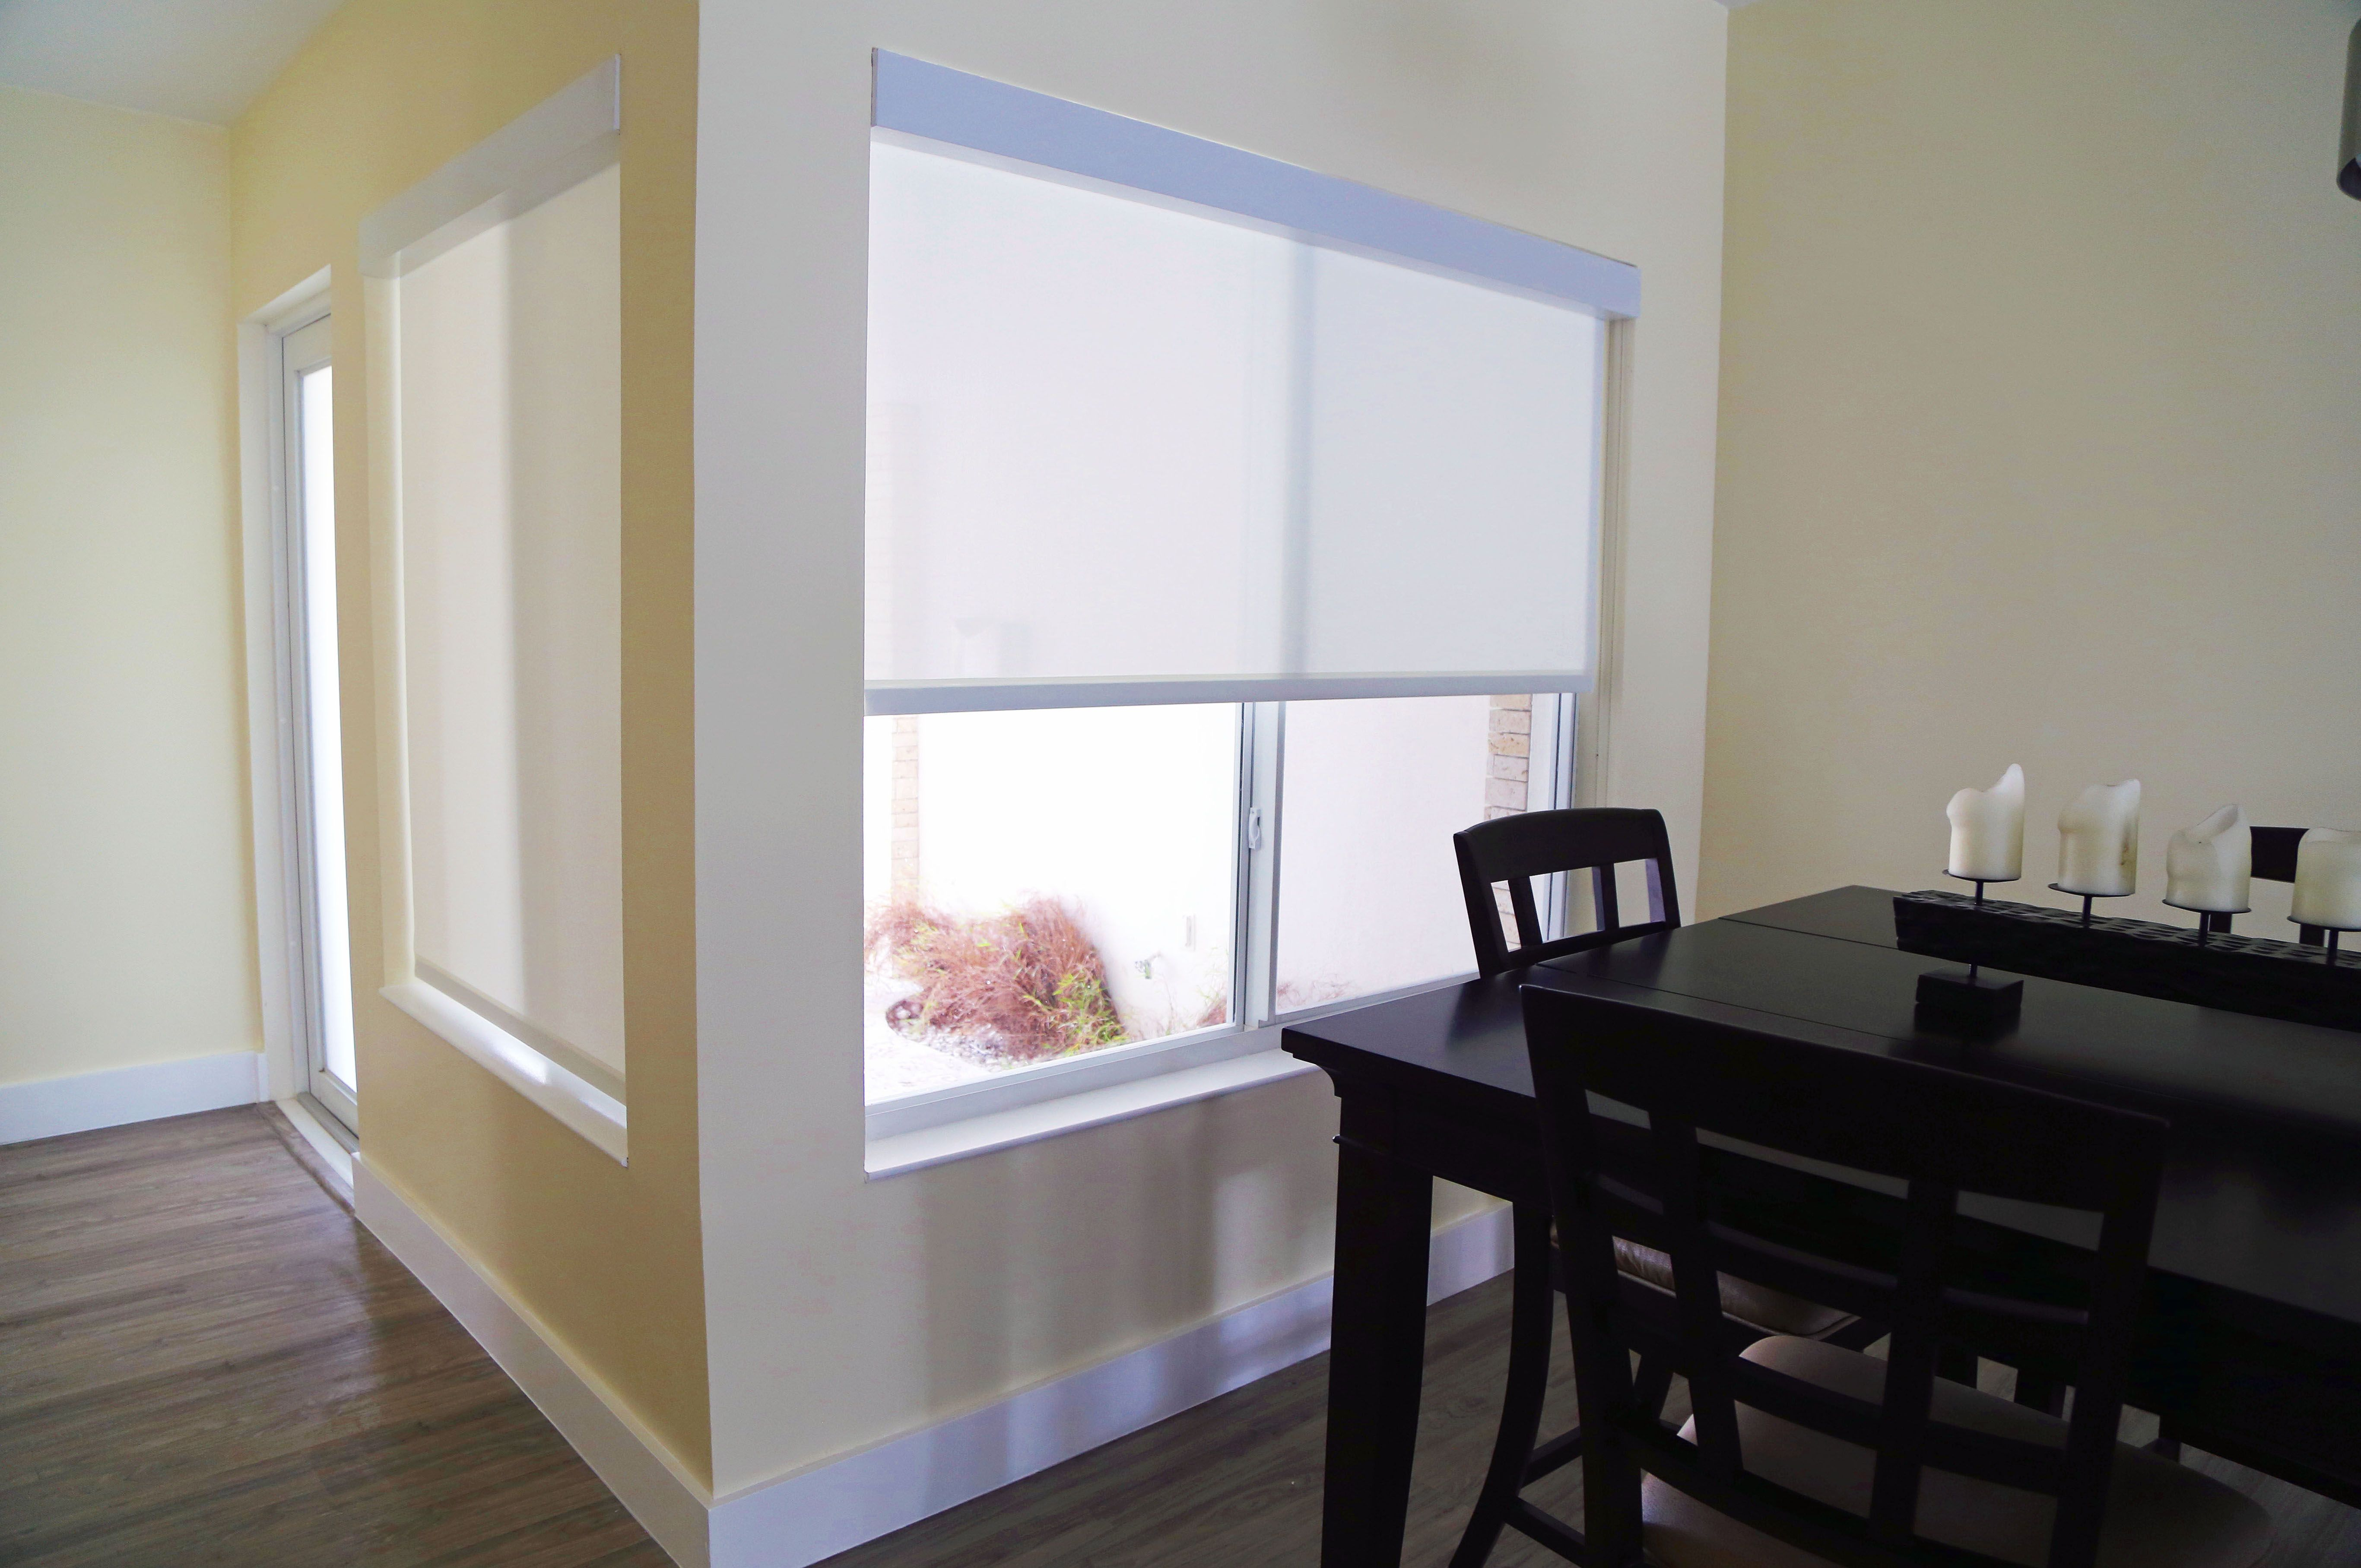 Easy installation for your home follow Shades online tutorial and shop with us today!